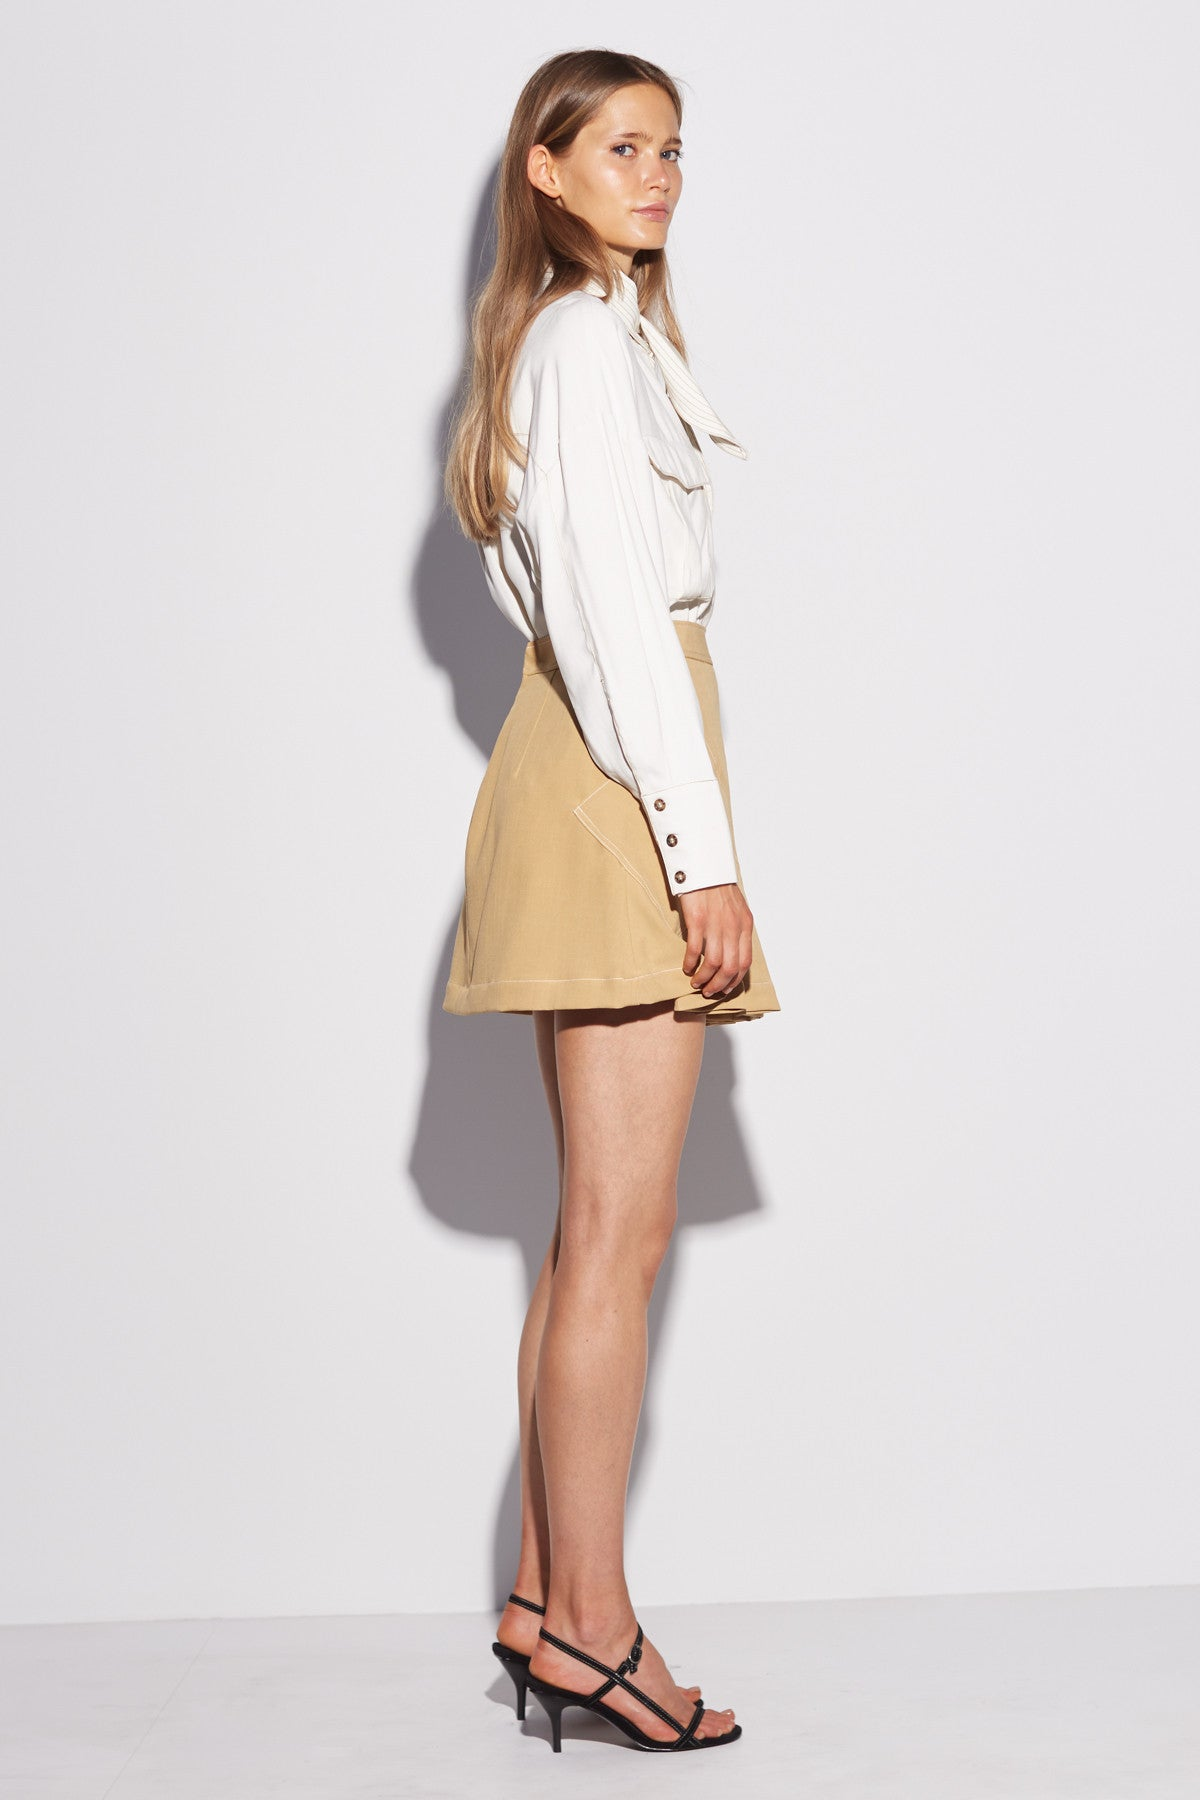 AGAINST YOU SKIRT mustard